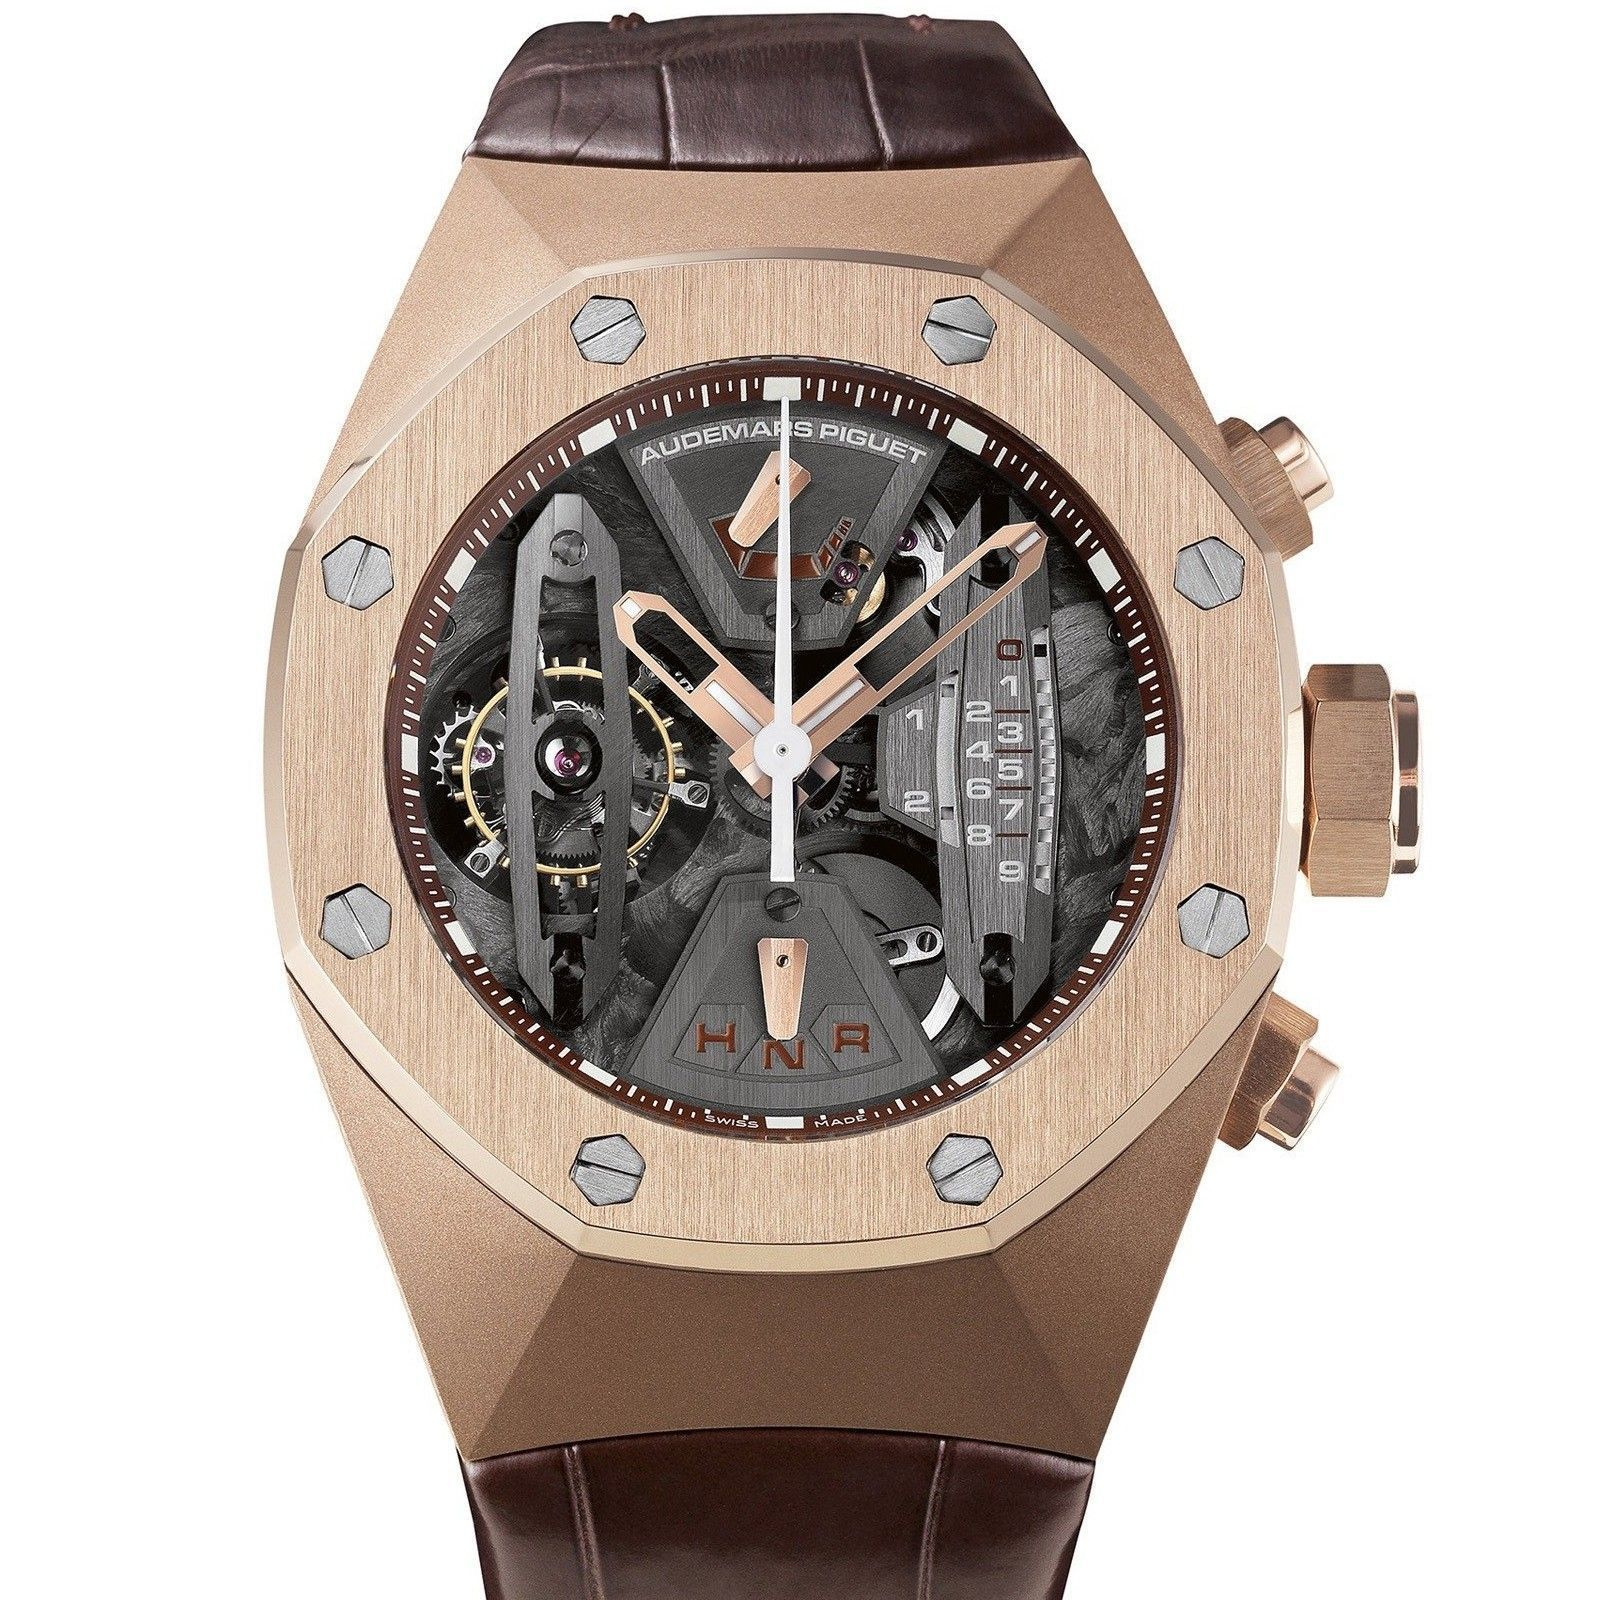 8e4d60f5b72 D099CR.01 Audemars Piguet Royal Oak Concept Tourbillon Chronograph  26223OR.OO.D099CR.01